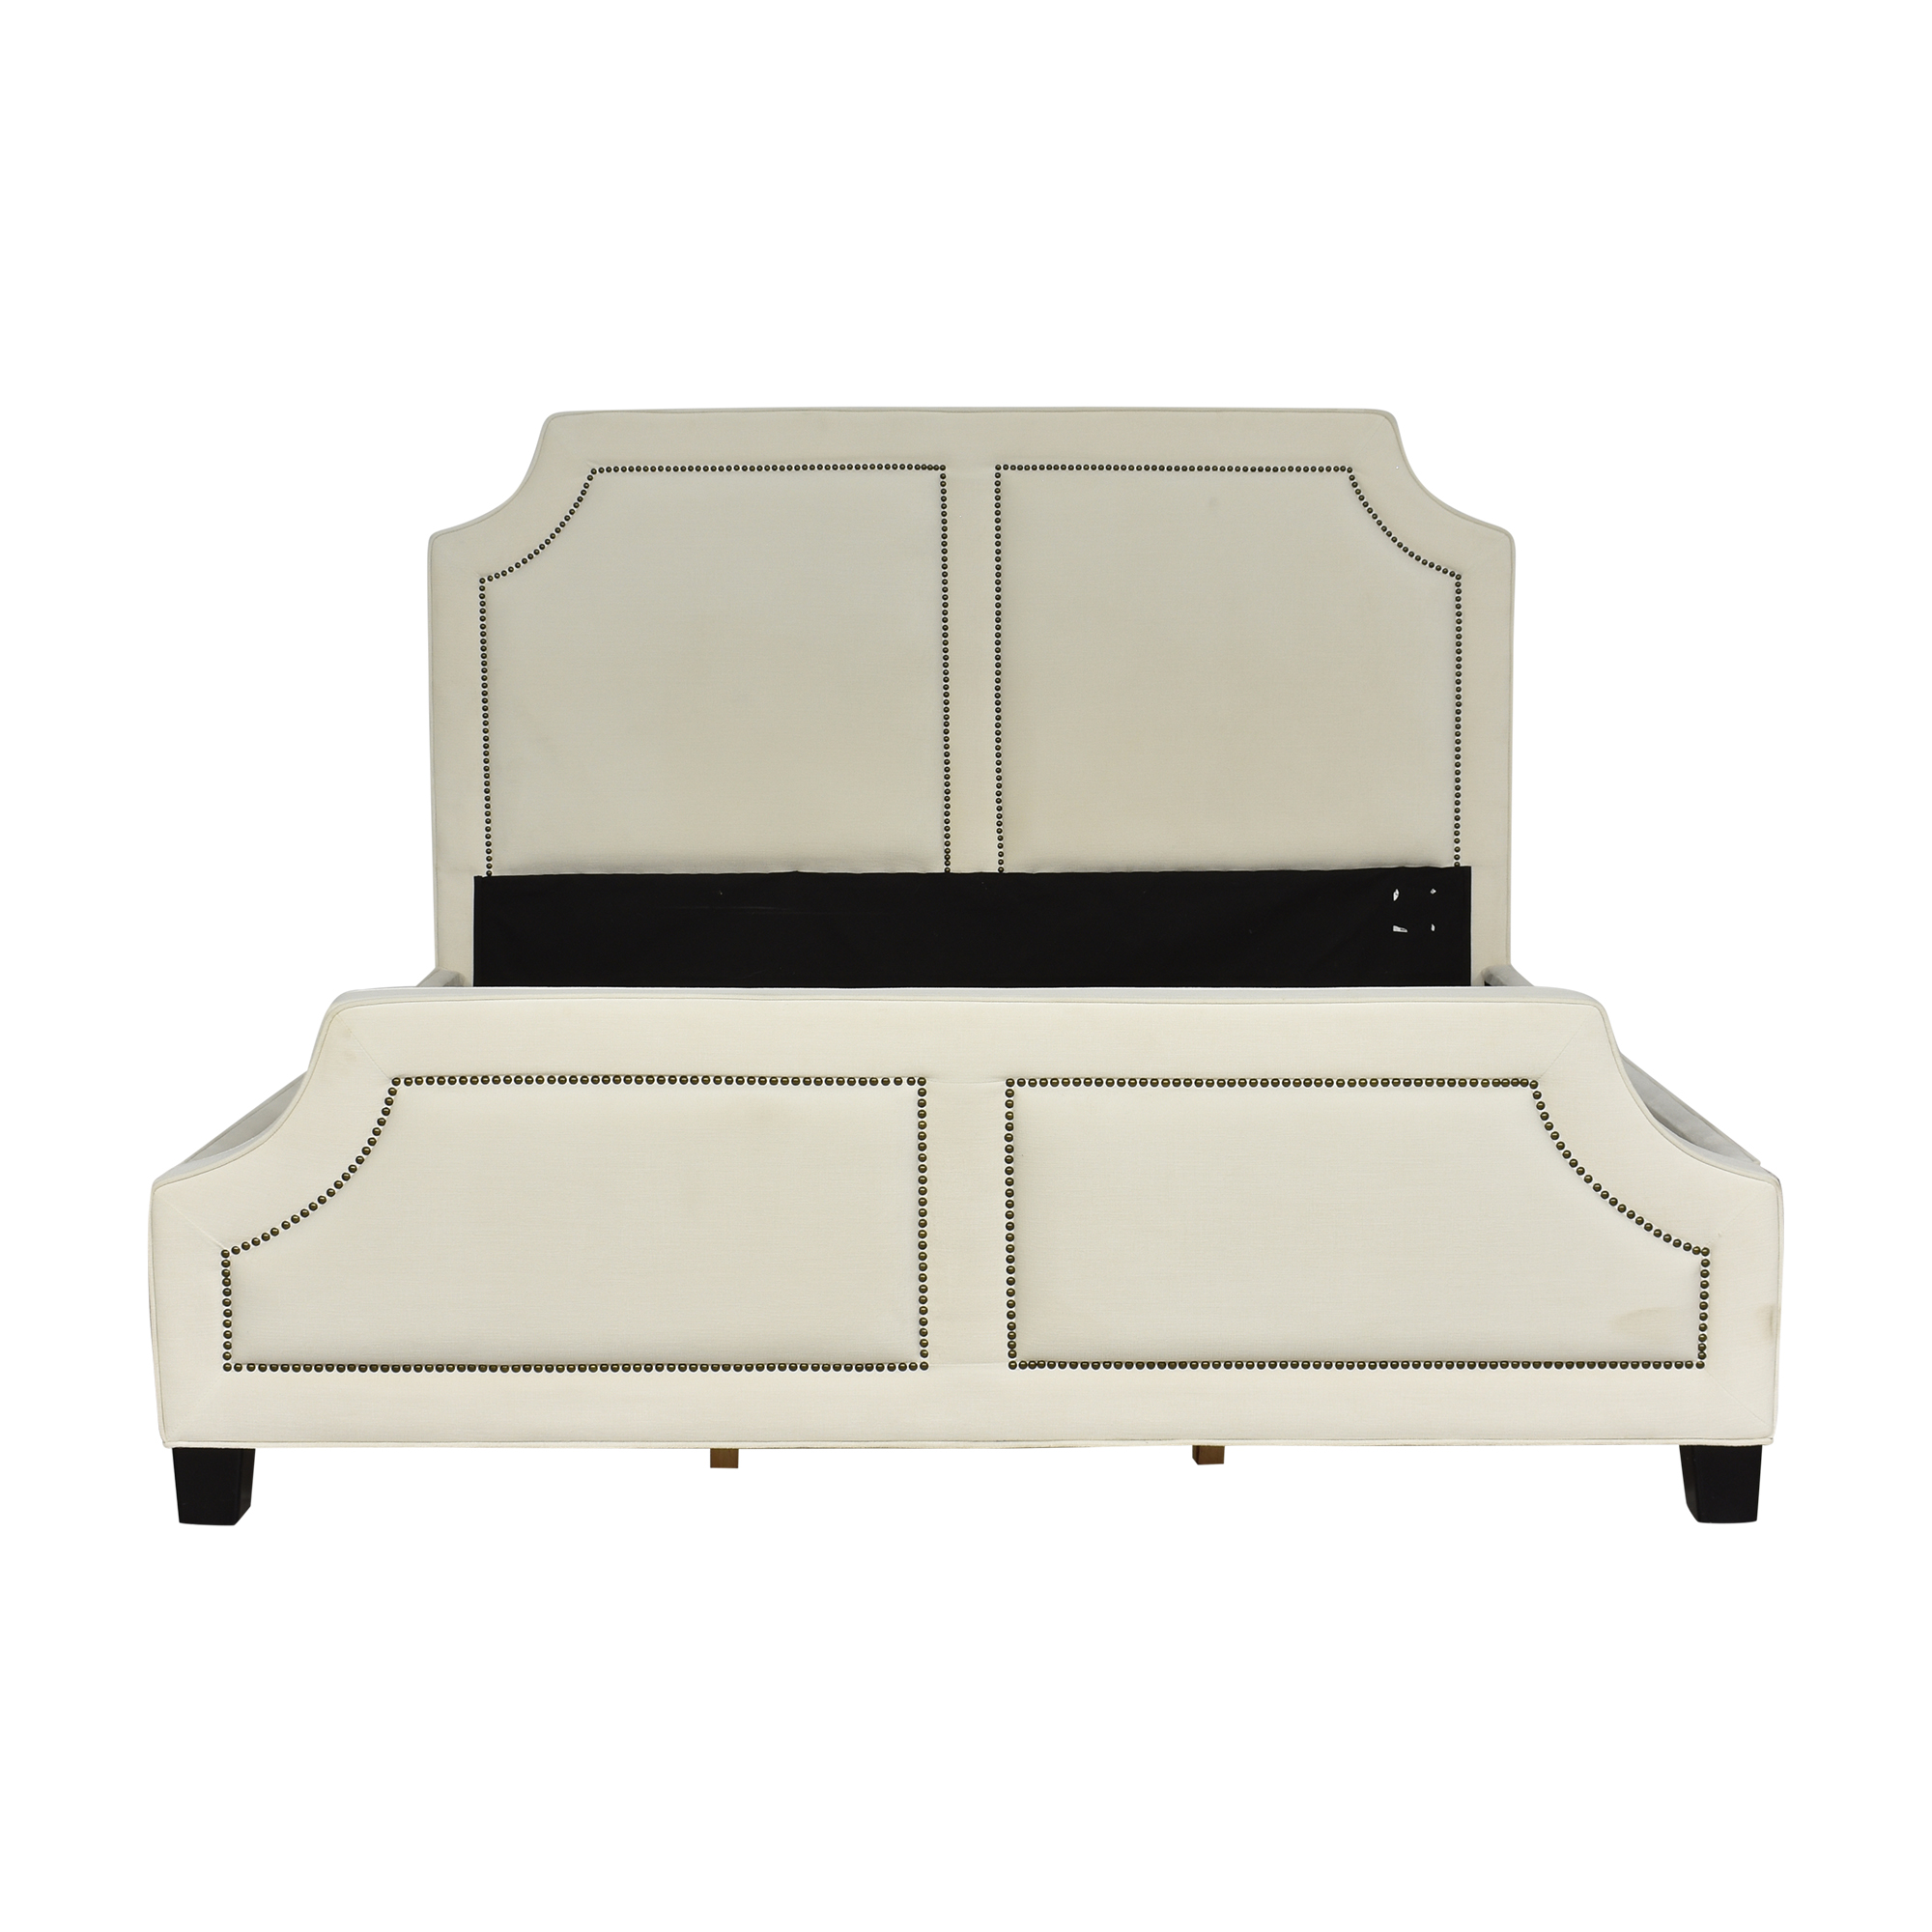 Coaster Fine Furniture Coaster Fine Furniture Upholstered Nailhead Trim King Bed Beds